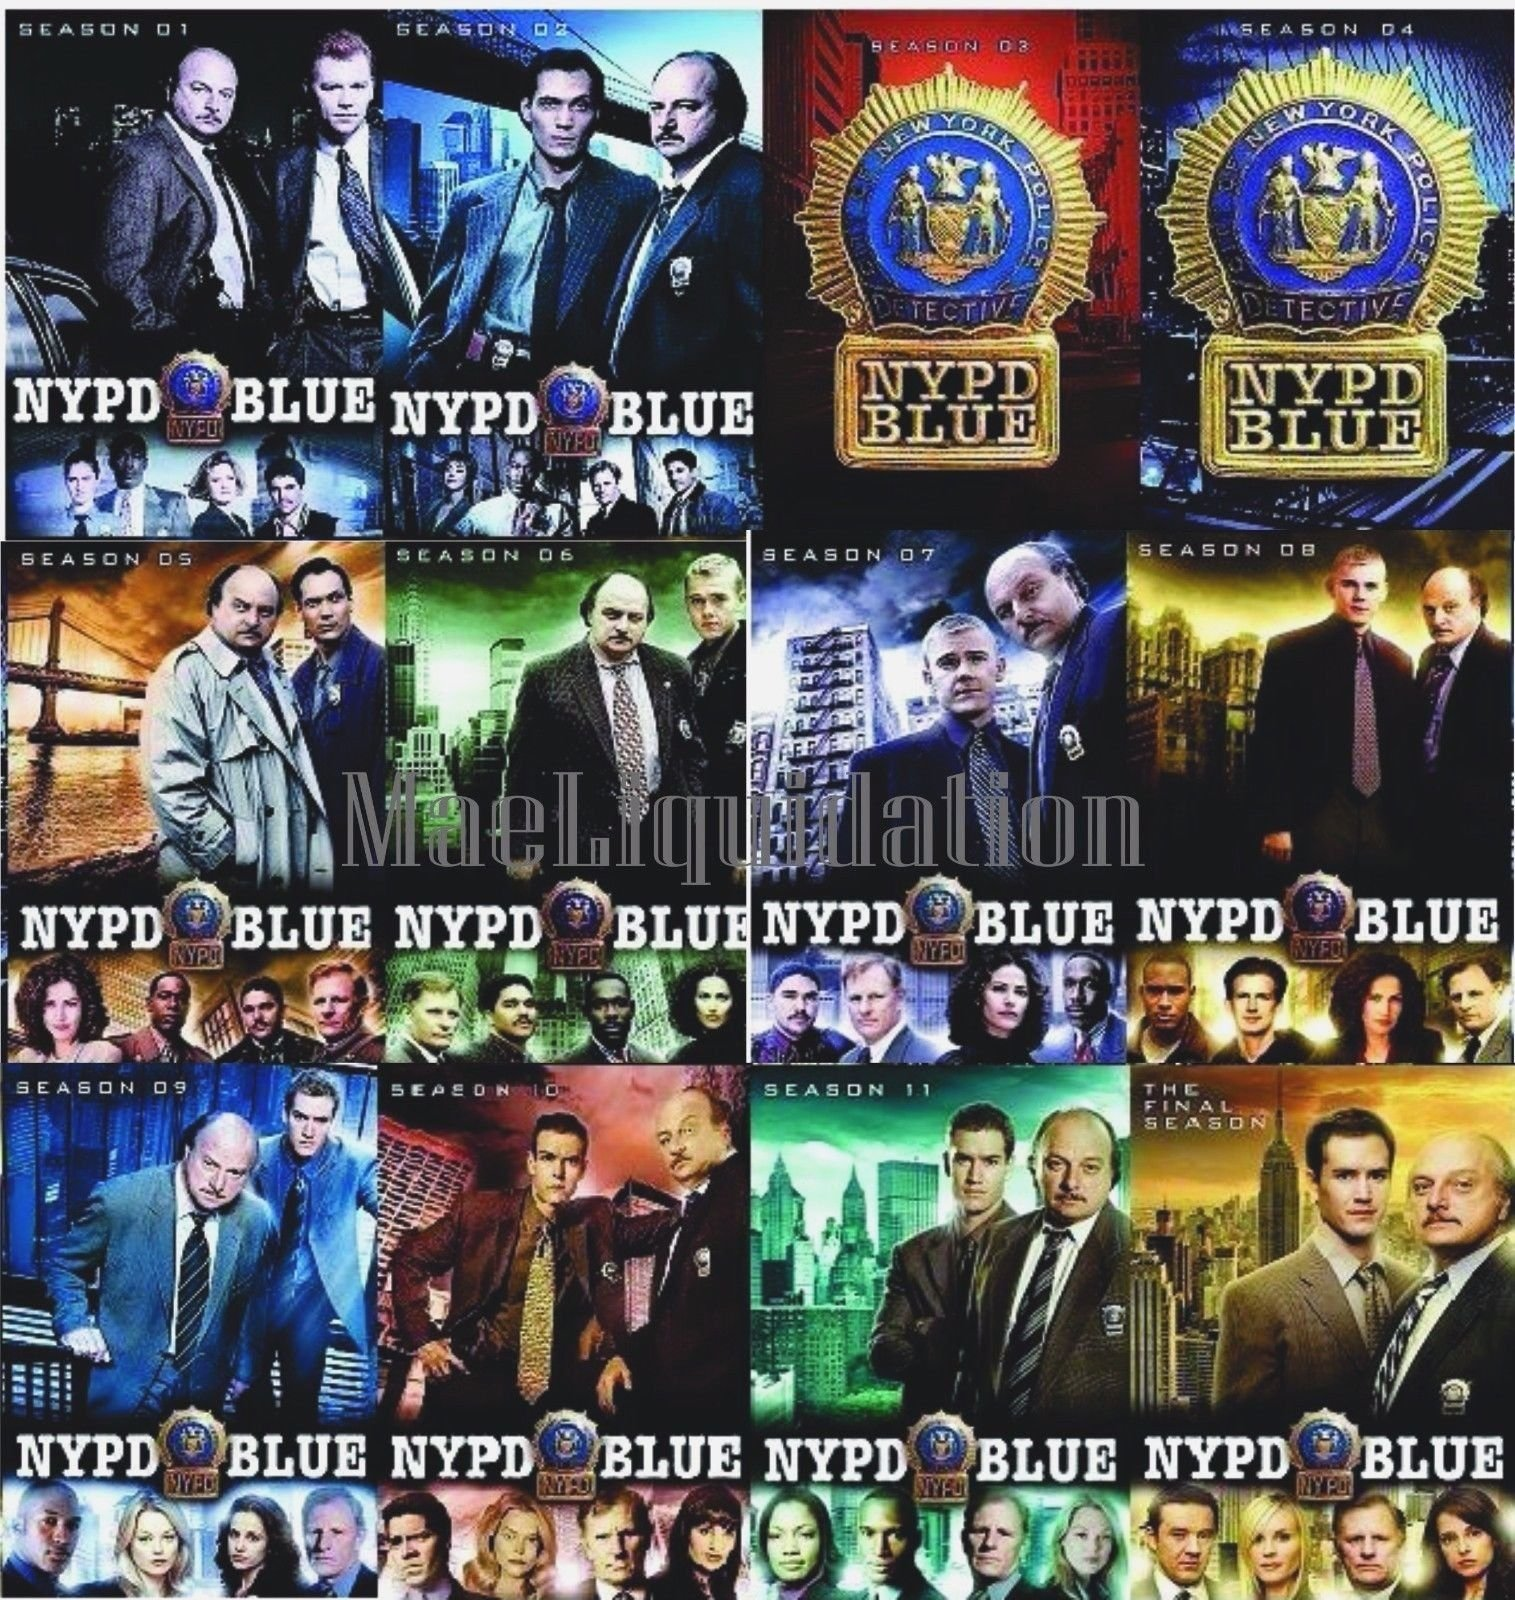 NYPD Blue: The Complete Series Seasons 1-12 DVD by Studio1